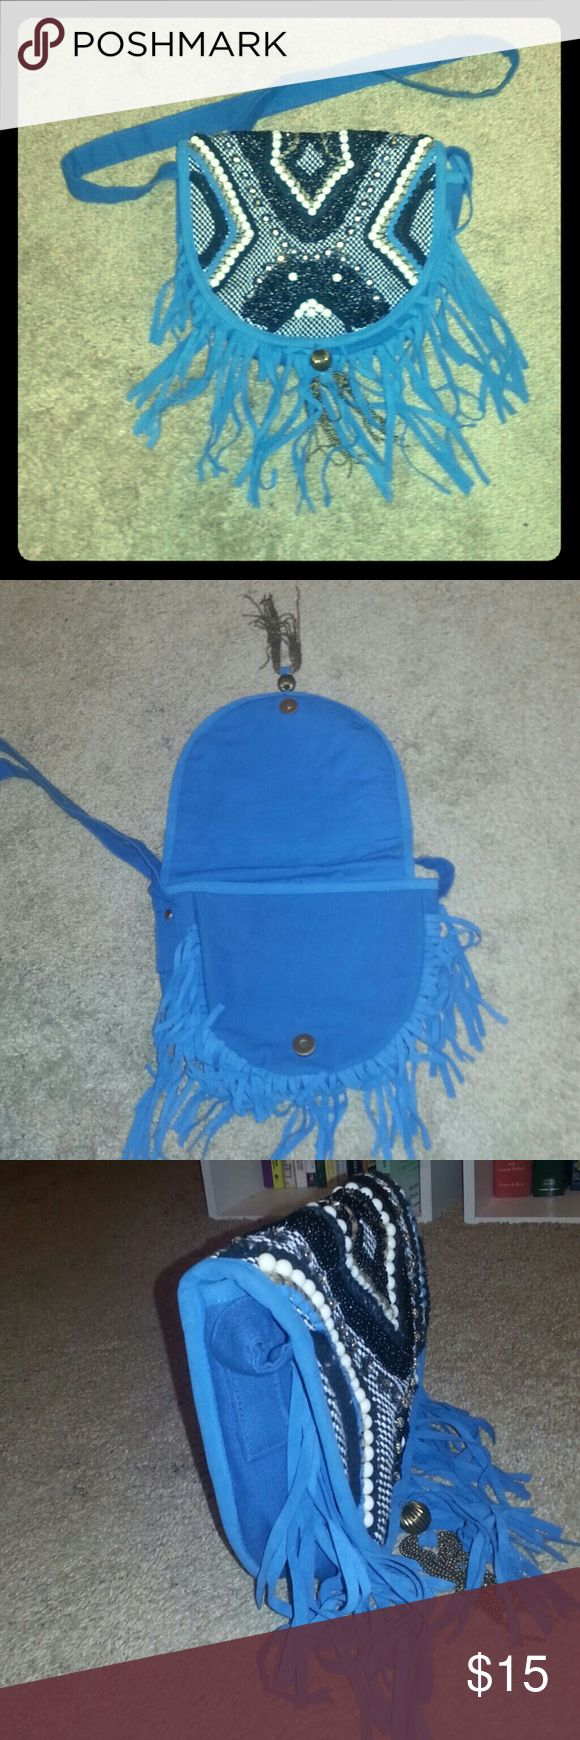 Beaded fringe bag 10in x 8in knit fabric with beautiful beading on the flap and an awesome tassel at the clasp. Great for festivals. earthbound Bags Crossbody Bags